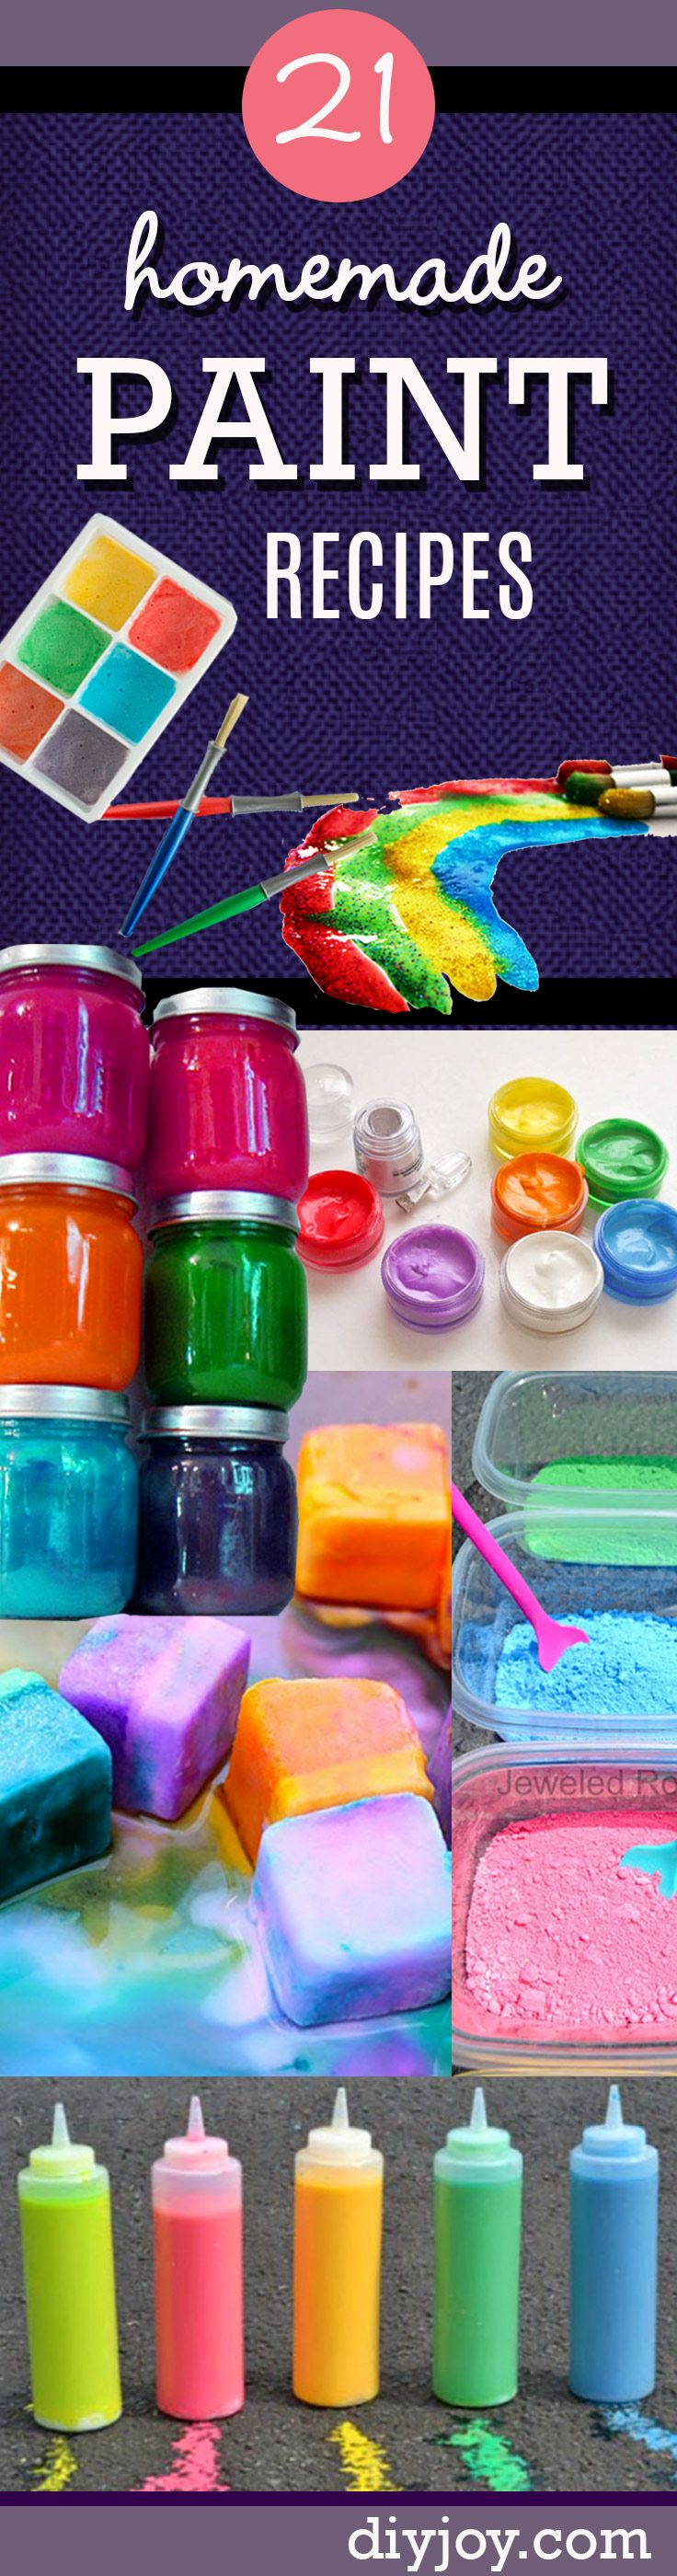 Superior 21 Easy DIY Paint Recipes Your Kids Will Go Crazy For Idea